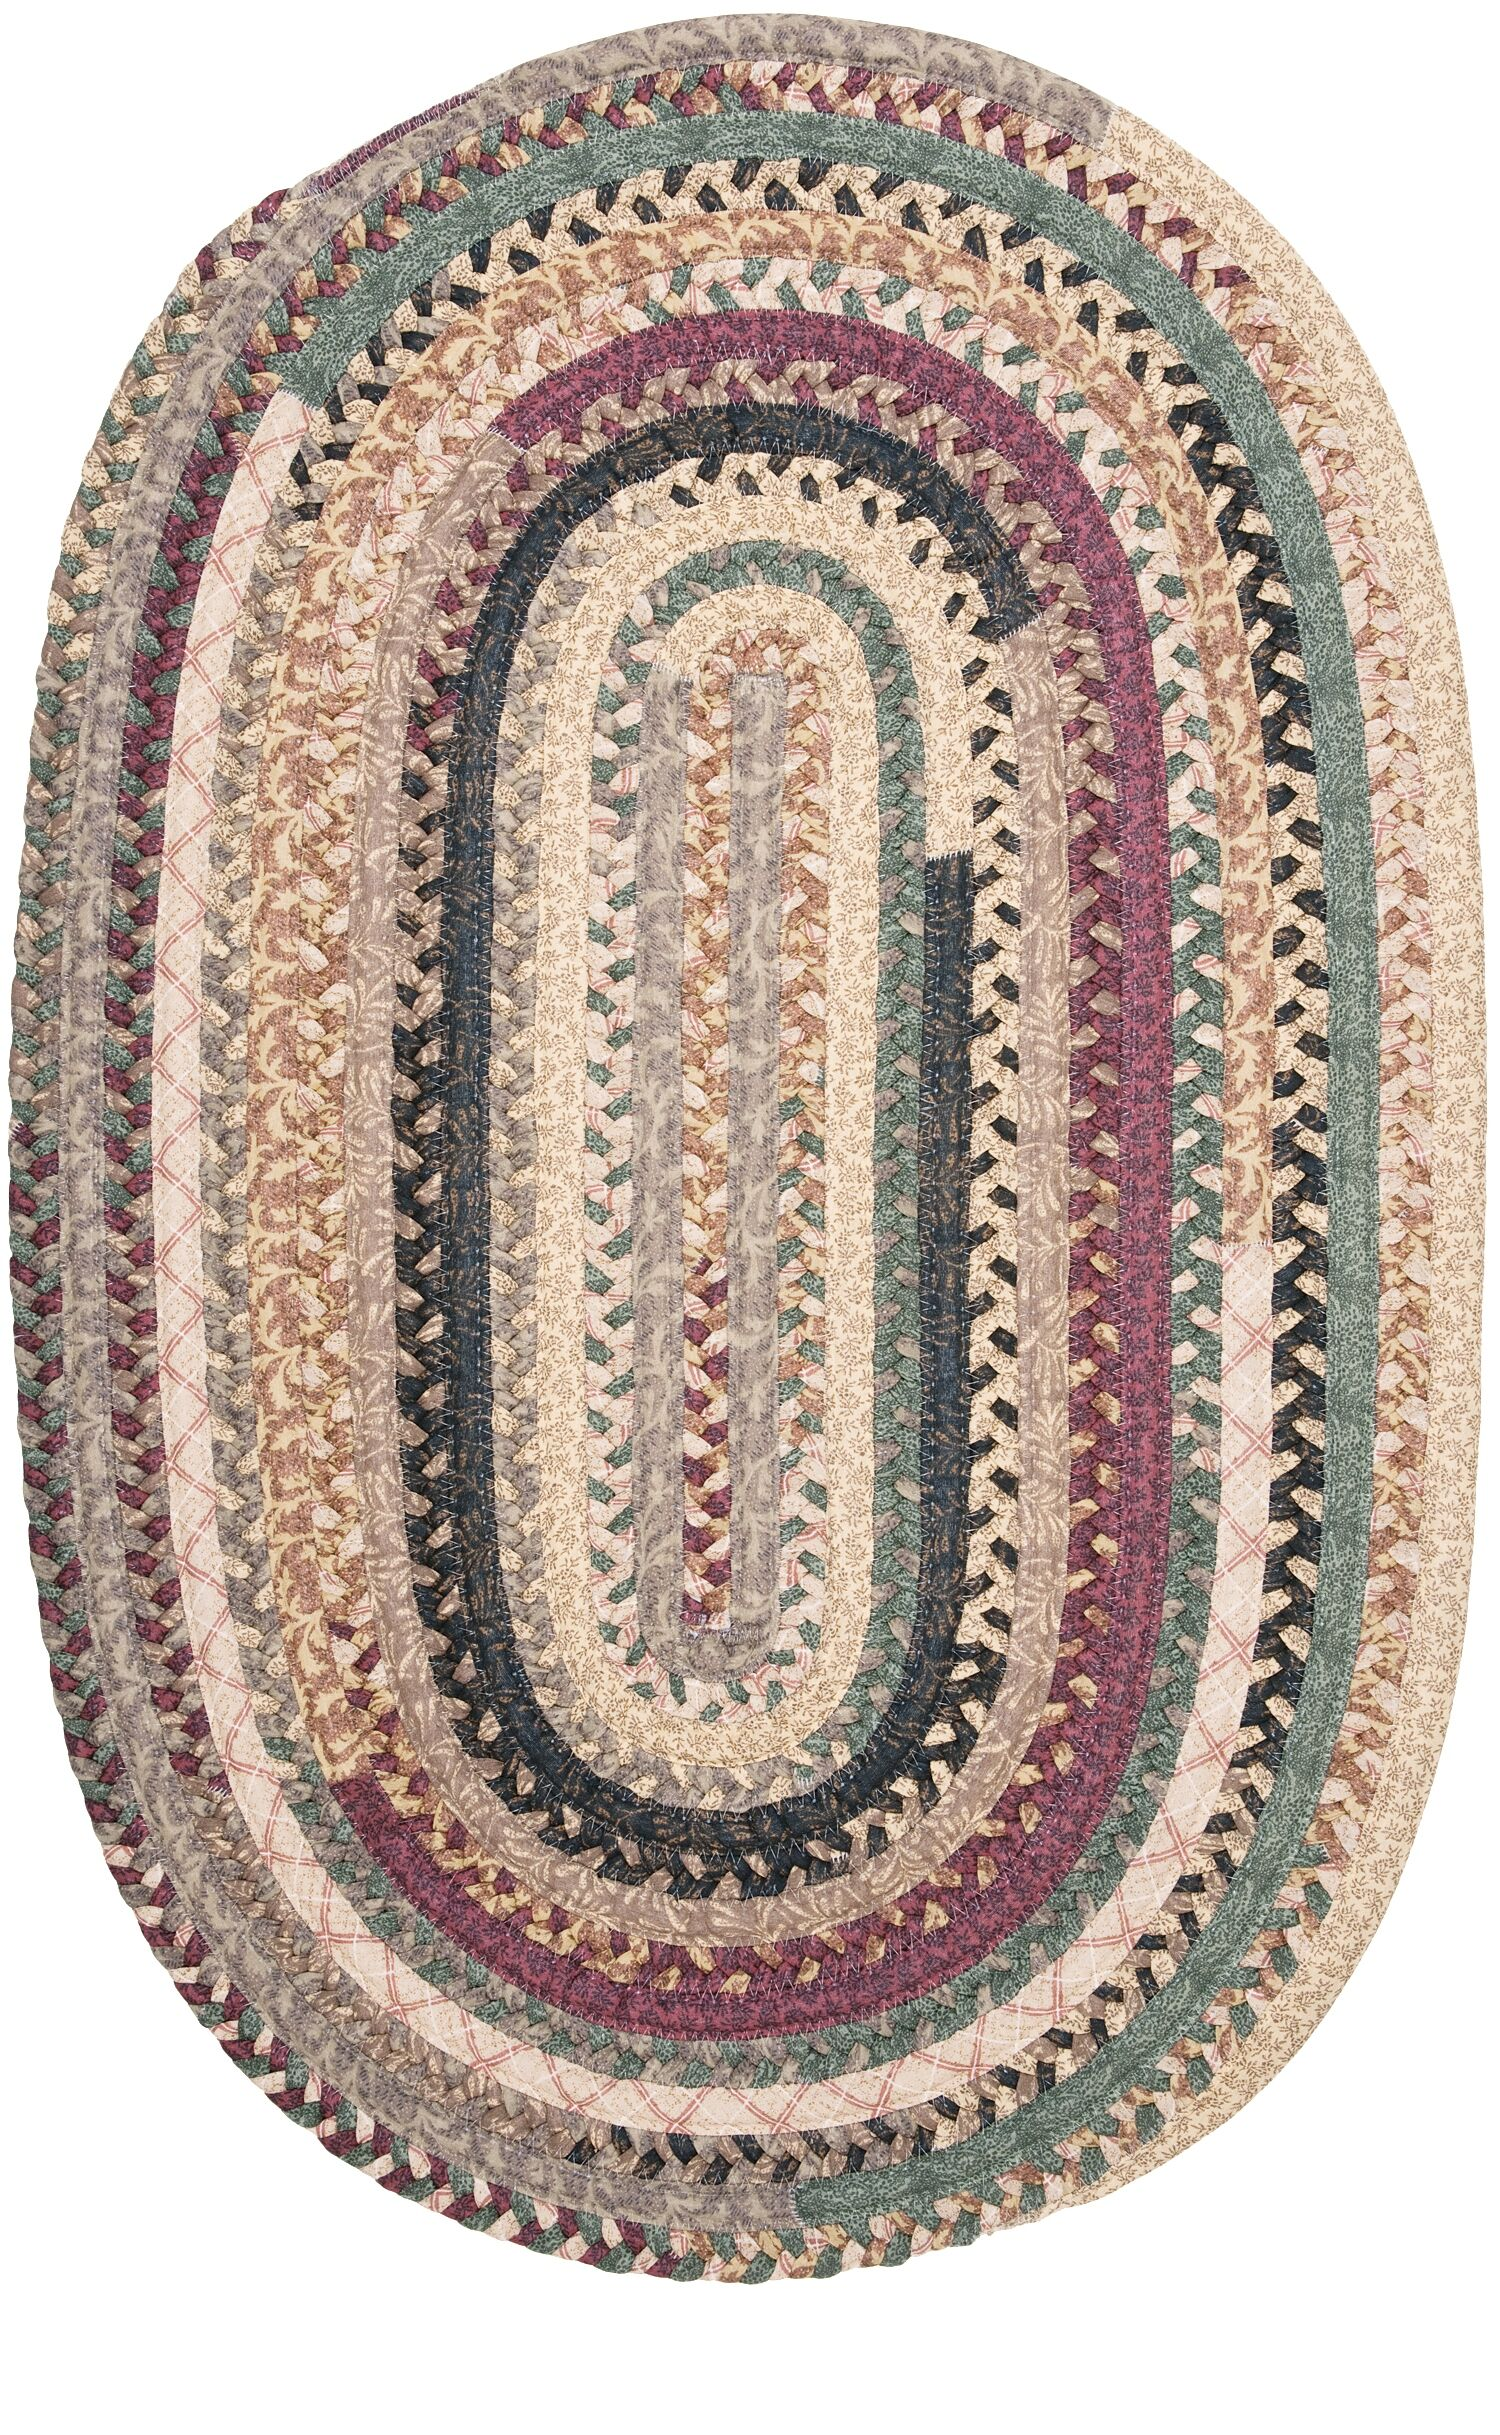 Lokey Cranberry Blend Kitchen Area Rug Rug Size: Round 10'